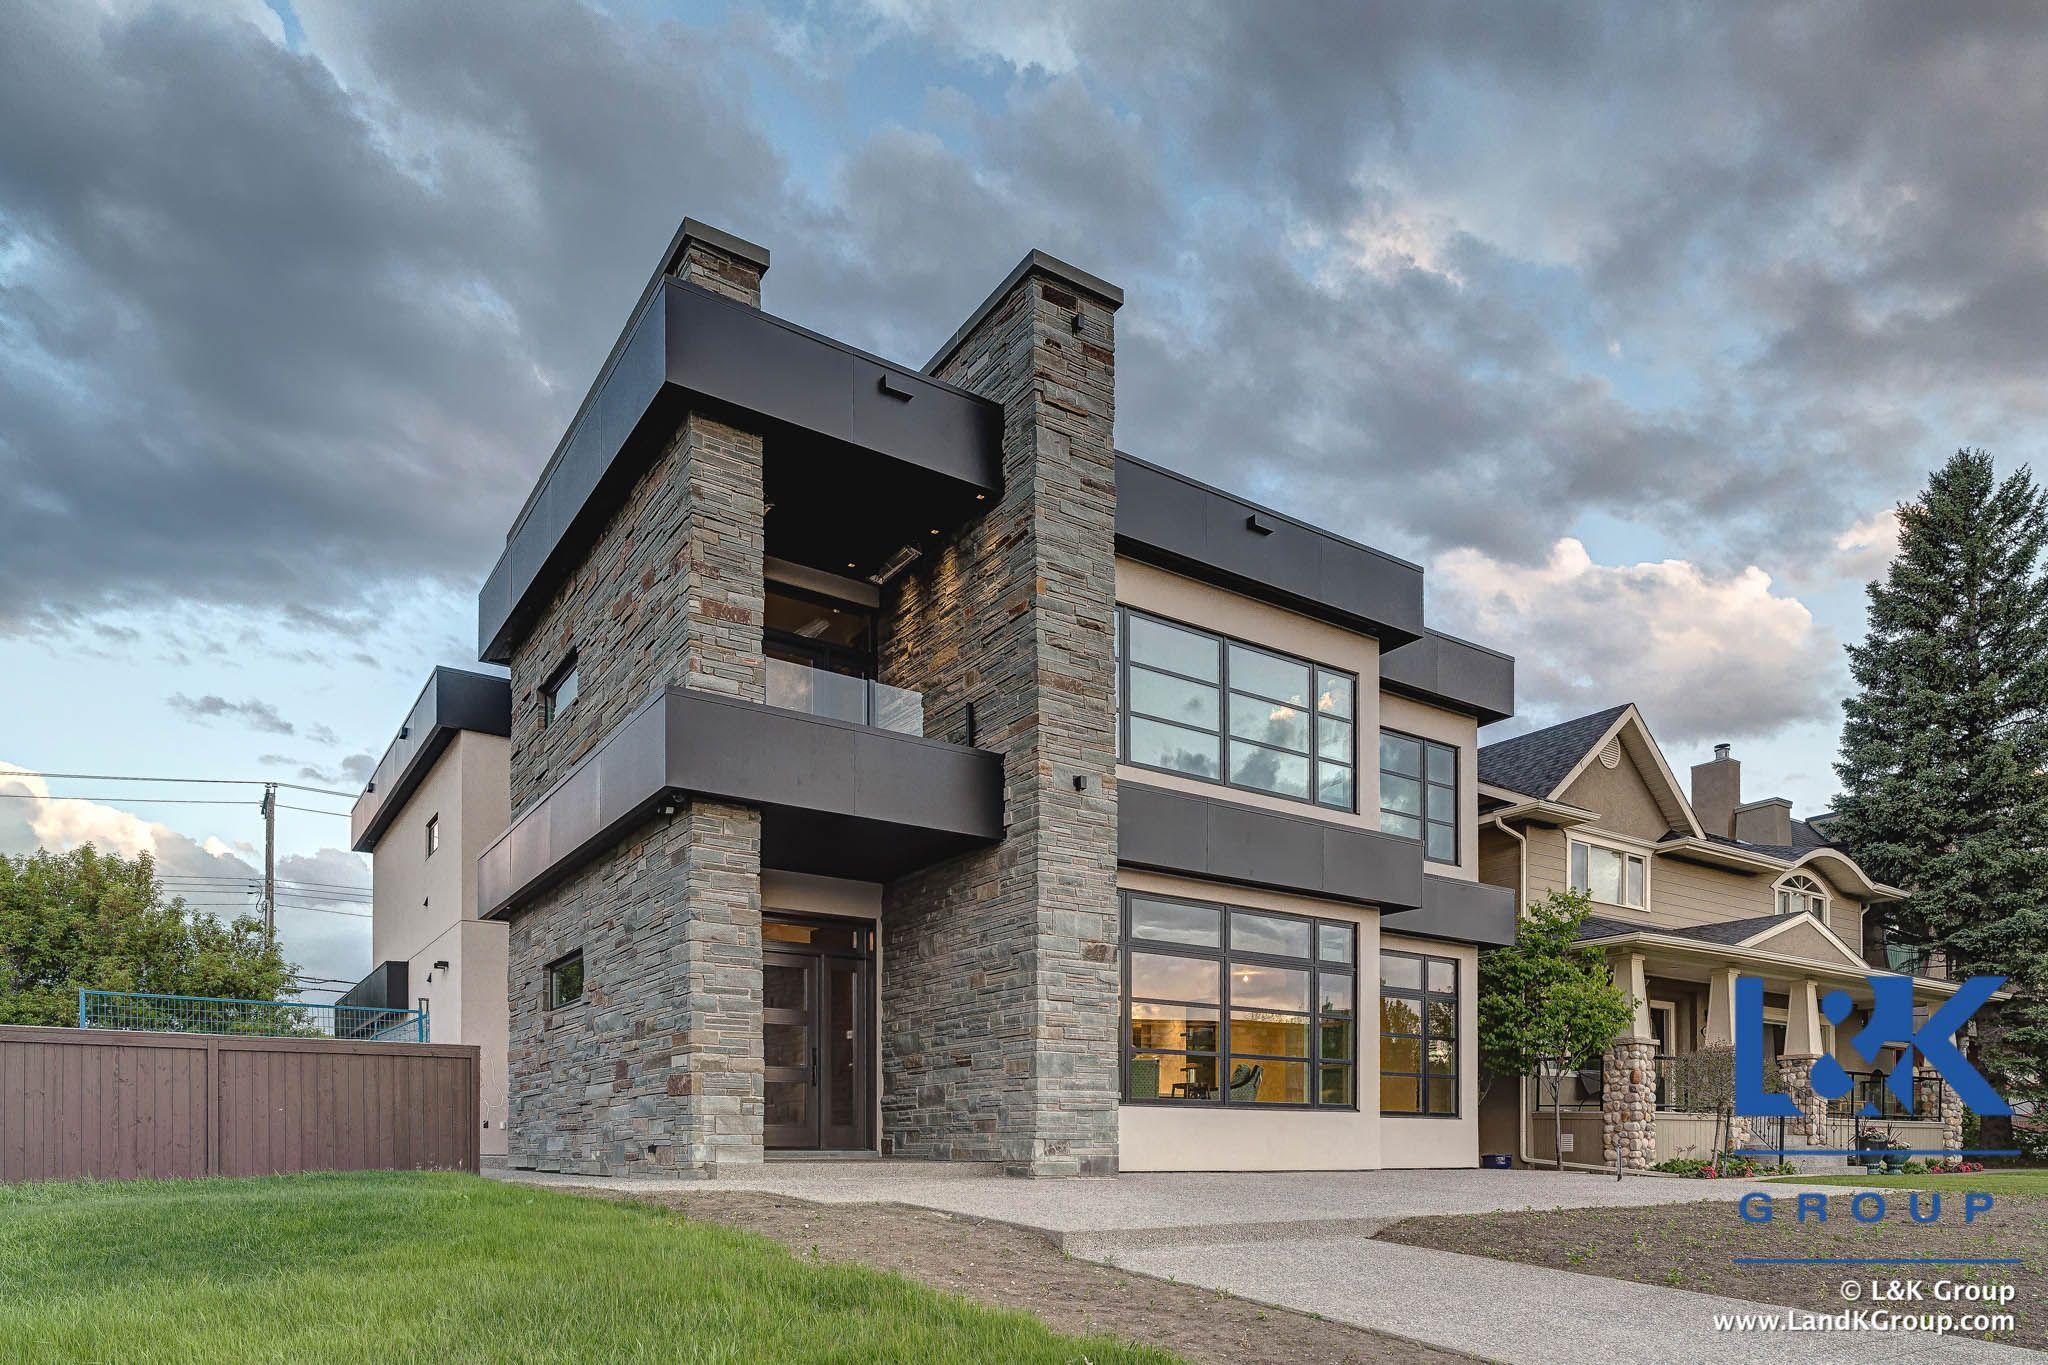 Superior Luxury Homes For Sale   401 33 Ave SW, Calgary, AB. T2A 0S8 Contact:  403 850 7538 Www.LandKGroup.com/go/Parkhill